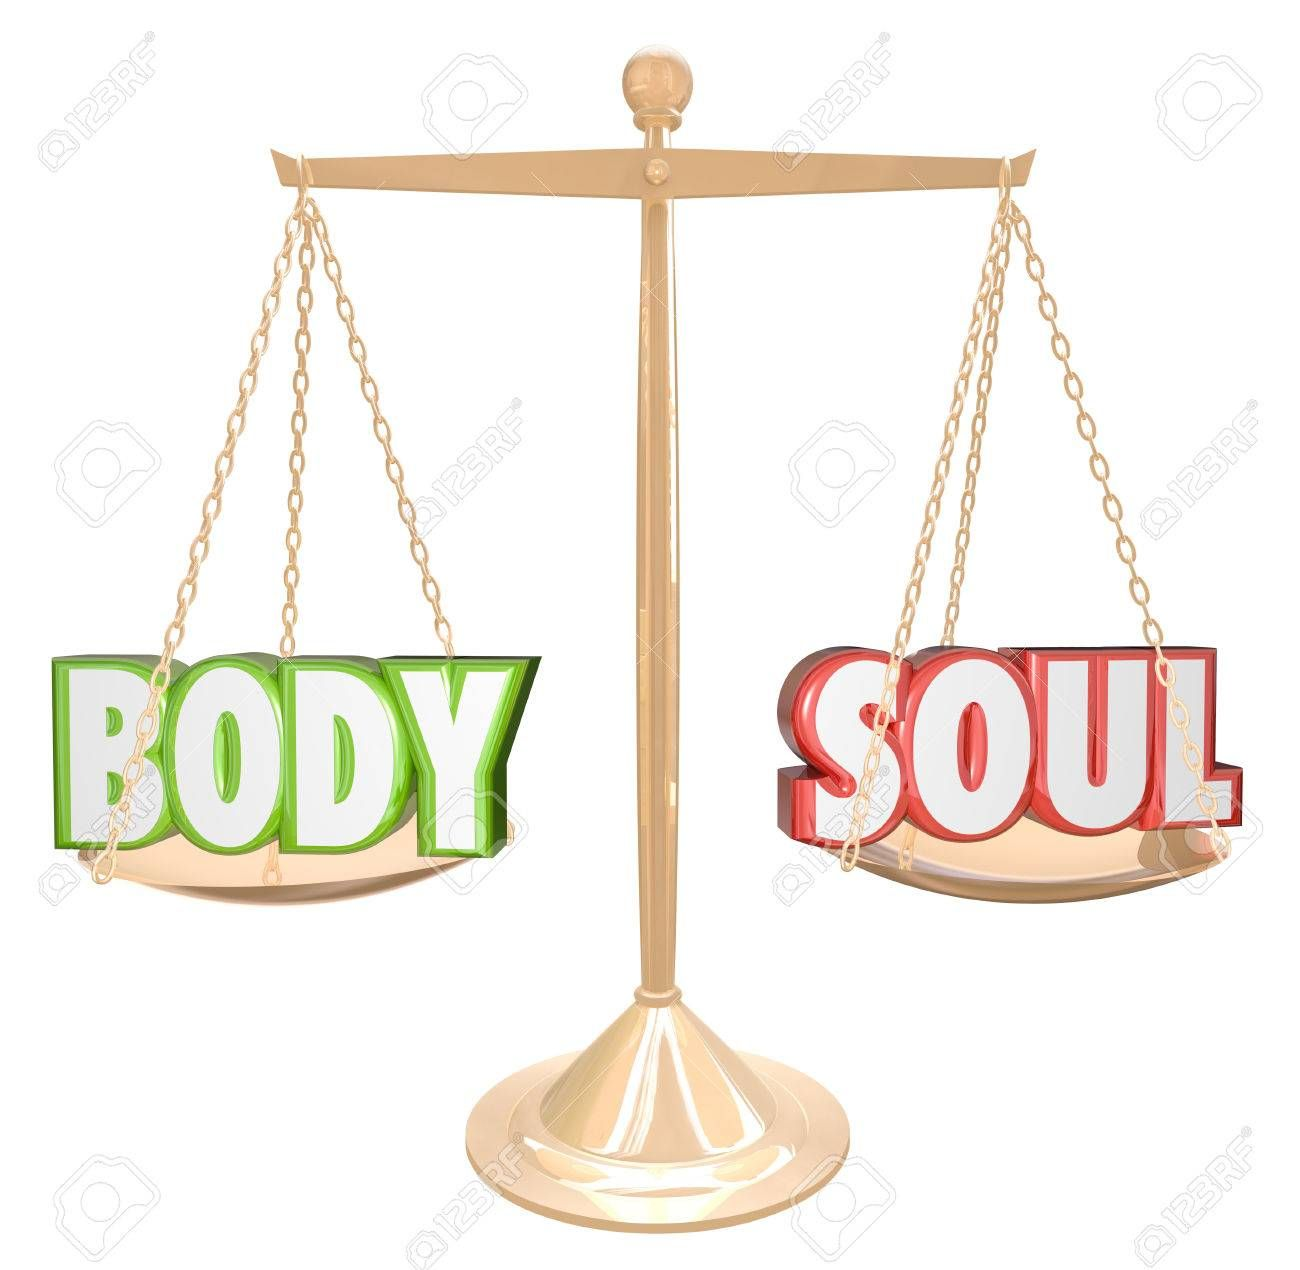 The words Body and Soul weighed on a scale in perfect balance to illustrate the goal of complete health, joy, happiness and fulfillment in life ,